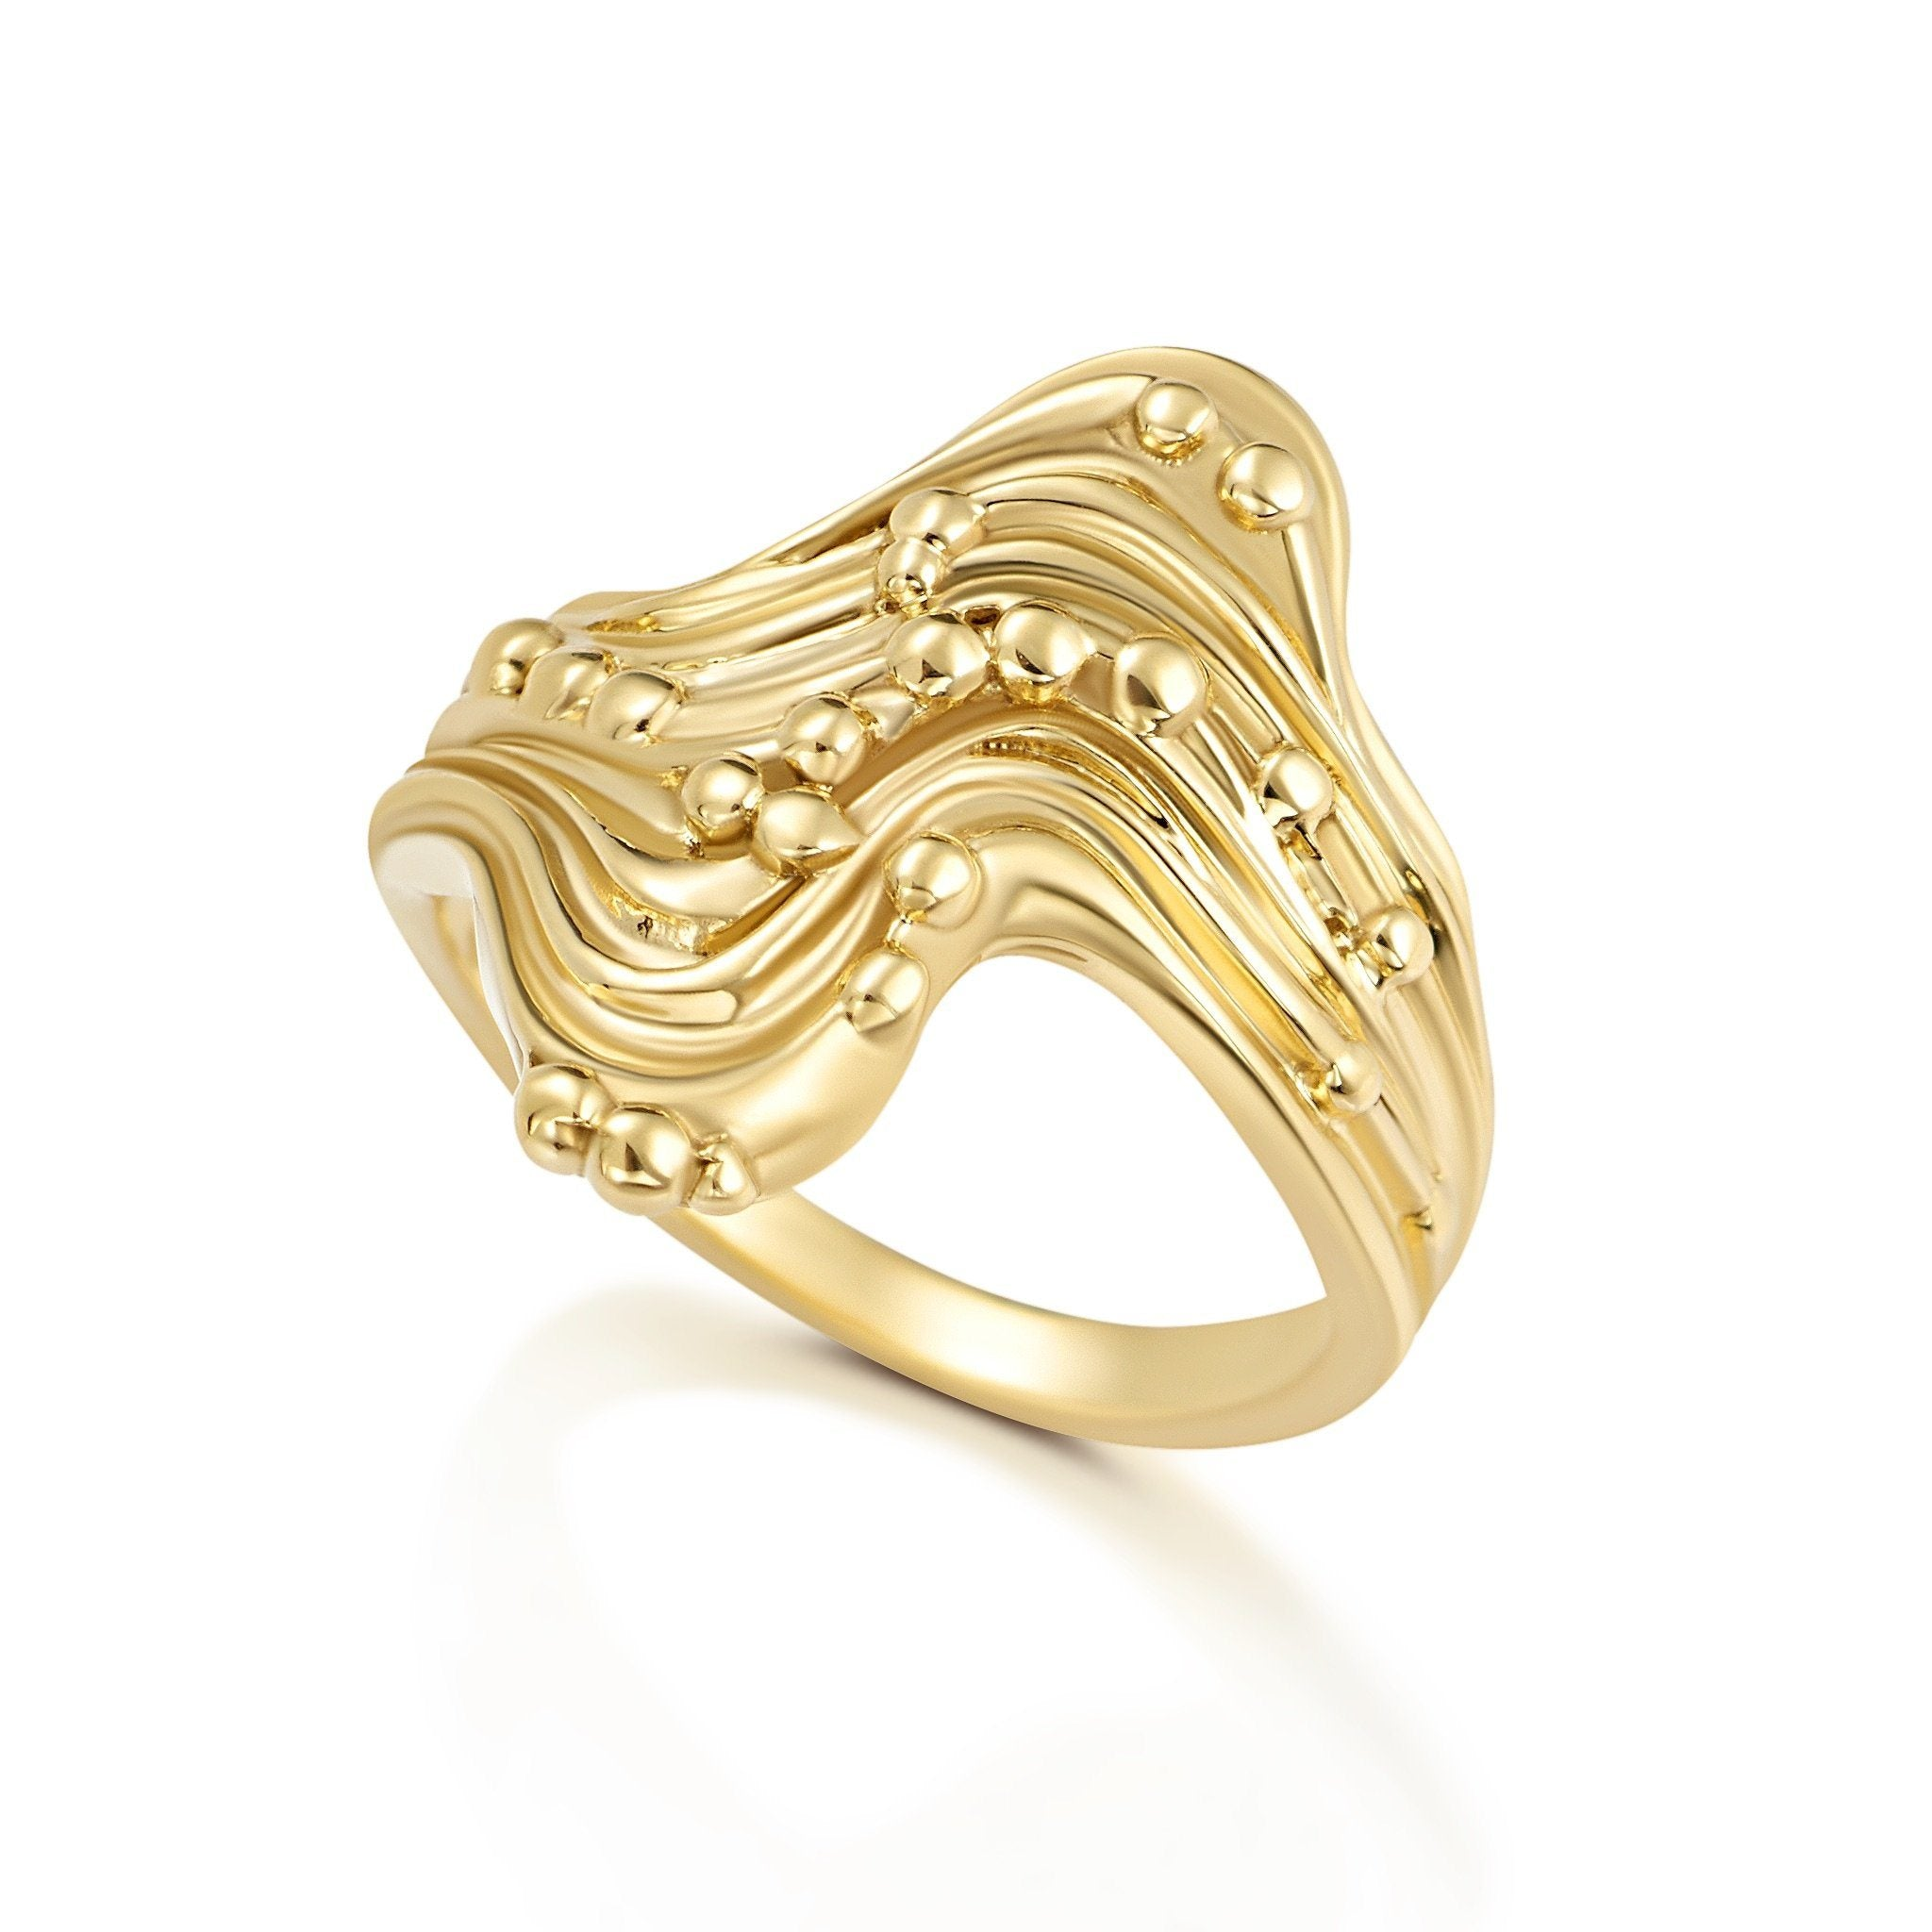 The Snake River Ring Jewelry Bayou with Love